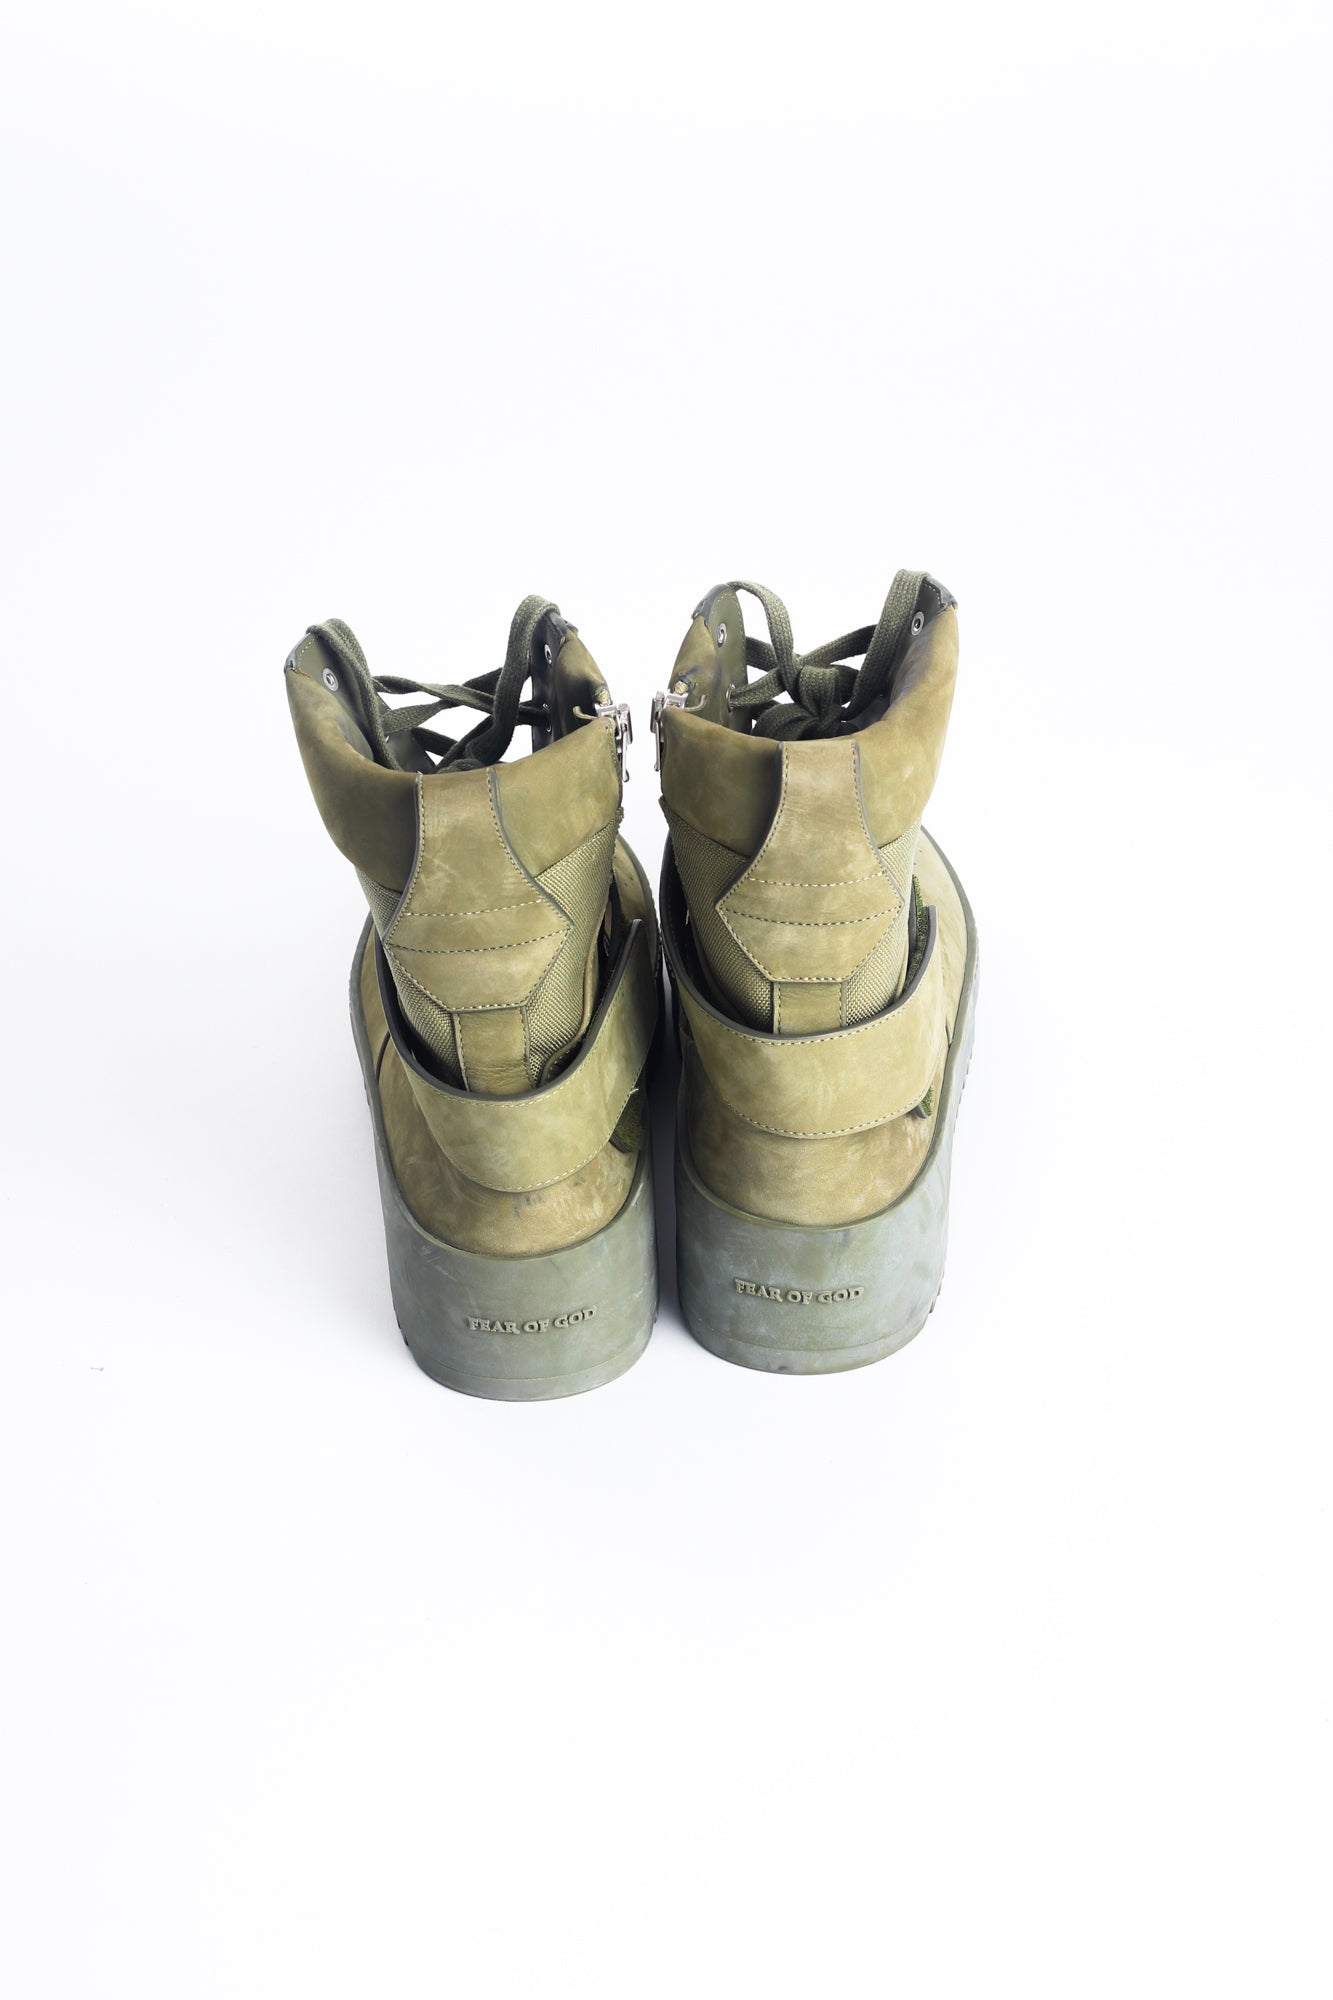 Fear Of God Men's Army Green Military Sneakers EU 45